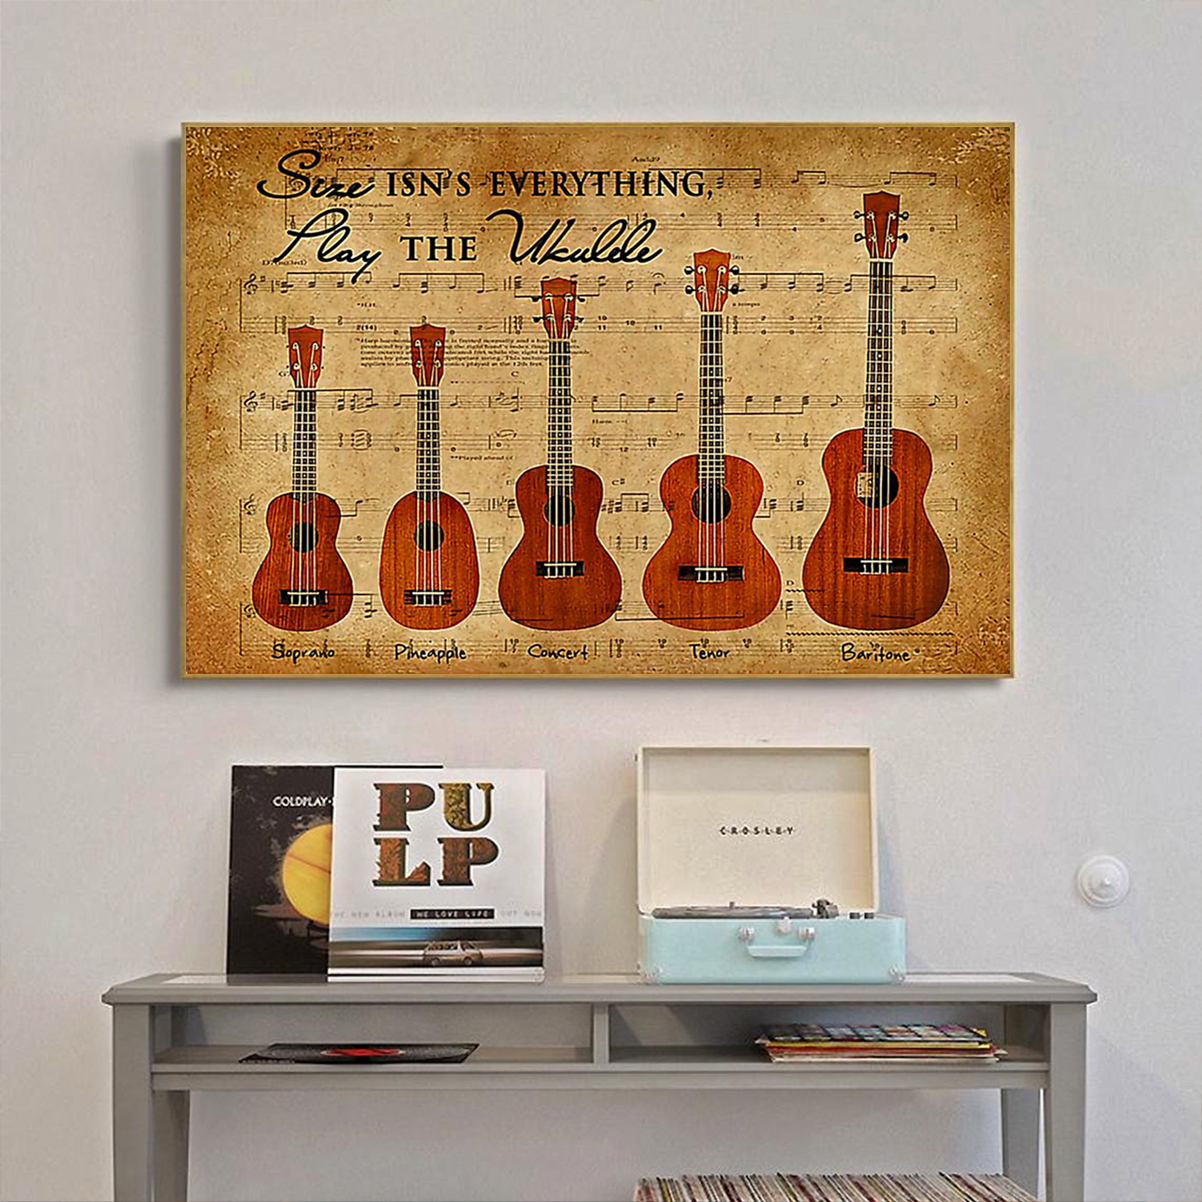 Size isn't everything play the ukulele poster A1